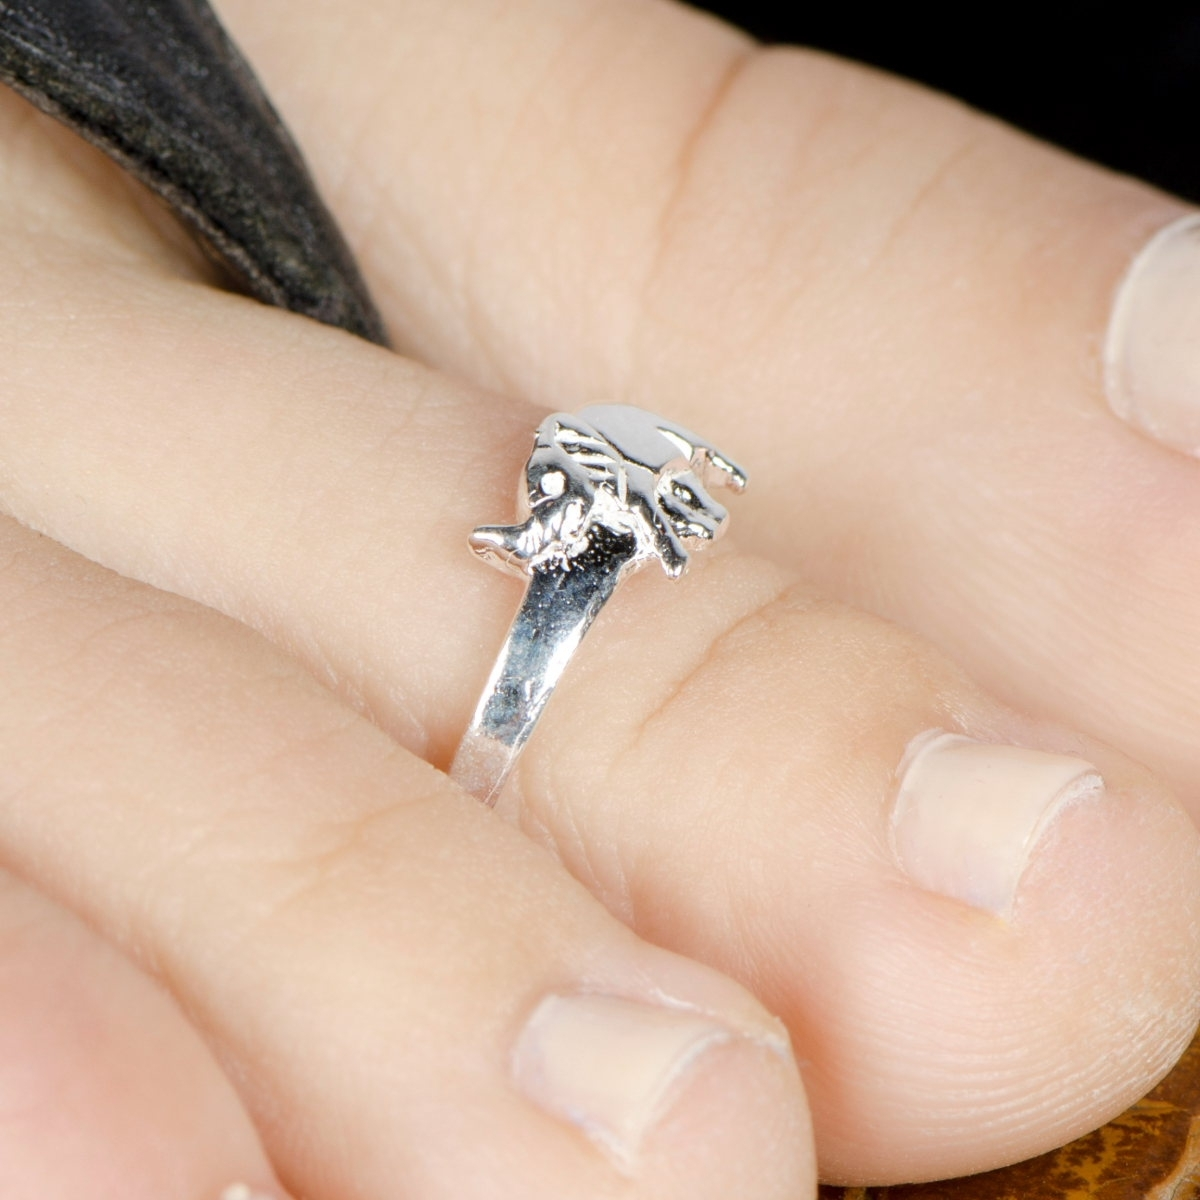 Quiet Wedding: Elephant Diamond Wedding Ring With Regard To Most Popular Toe Engagement Rings (Gallery 1 of 15)